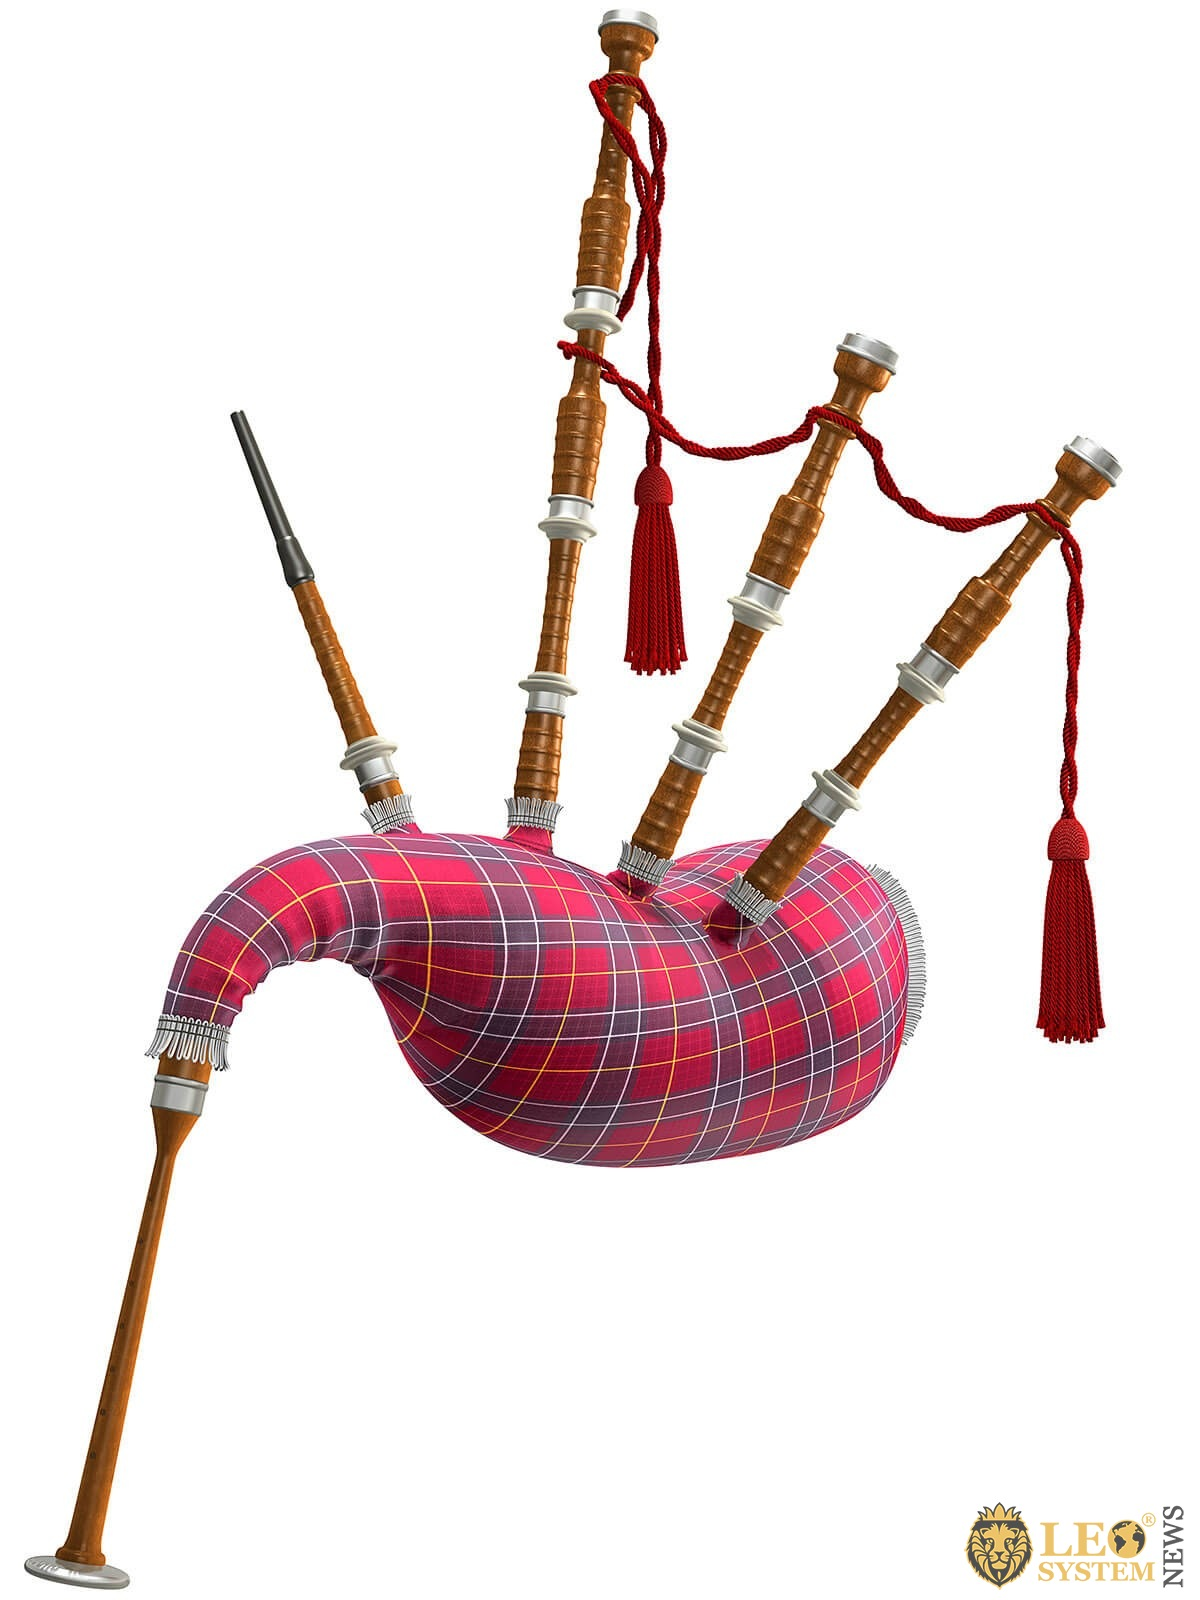 Image of a musical instrument - Bagpipes